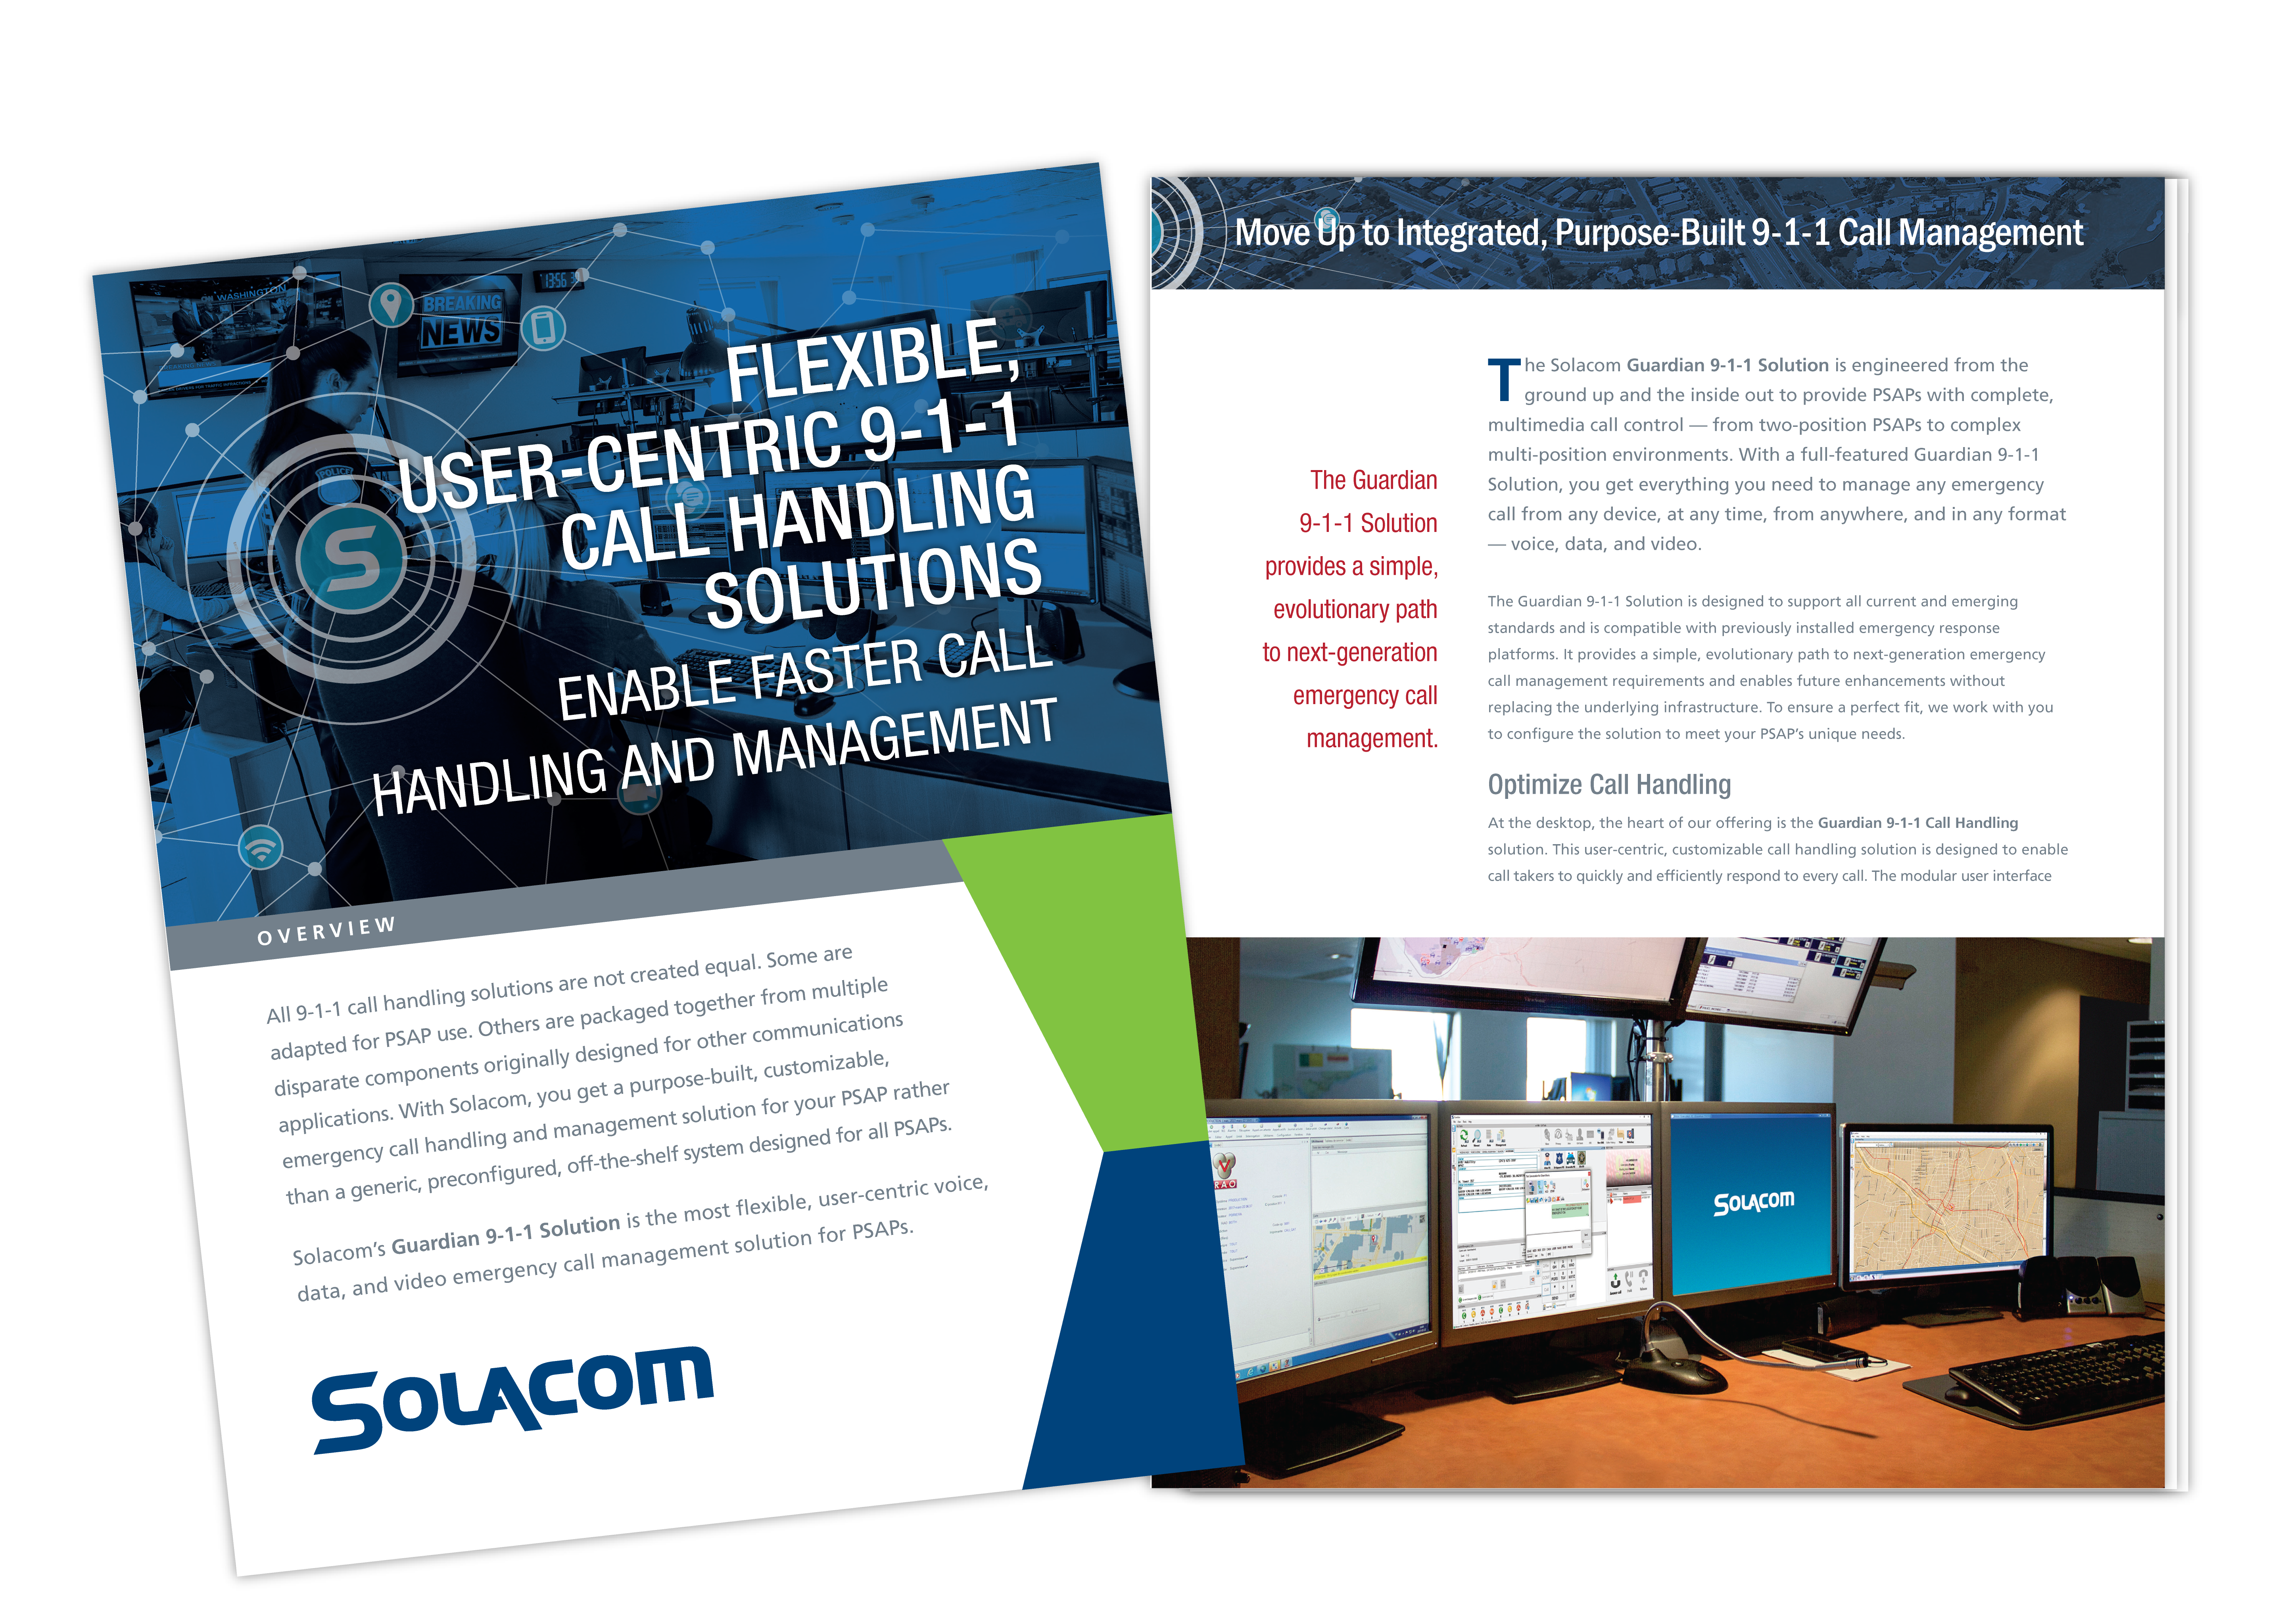 Solacom Overview, a company and product overview